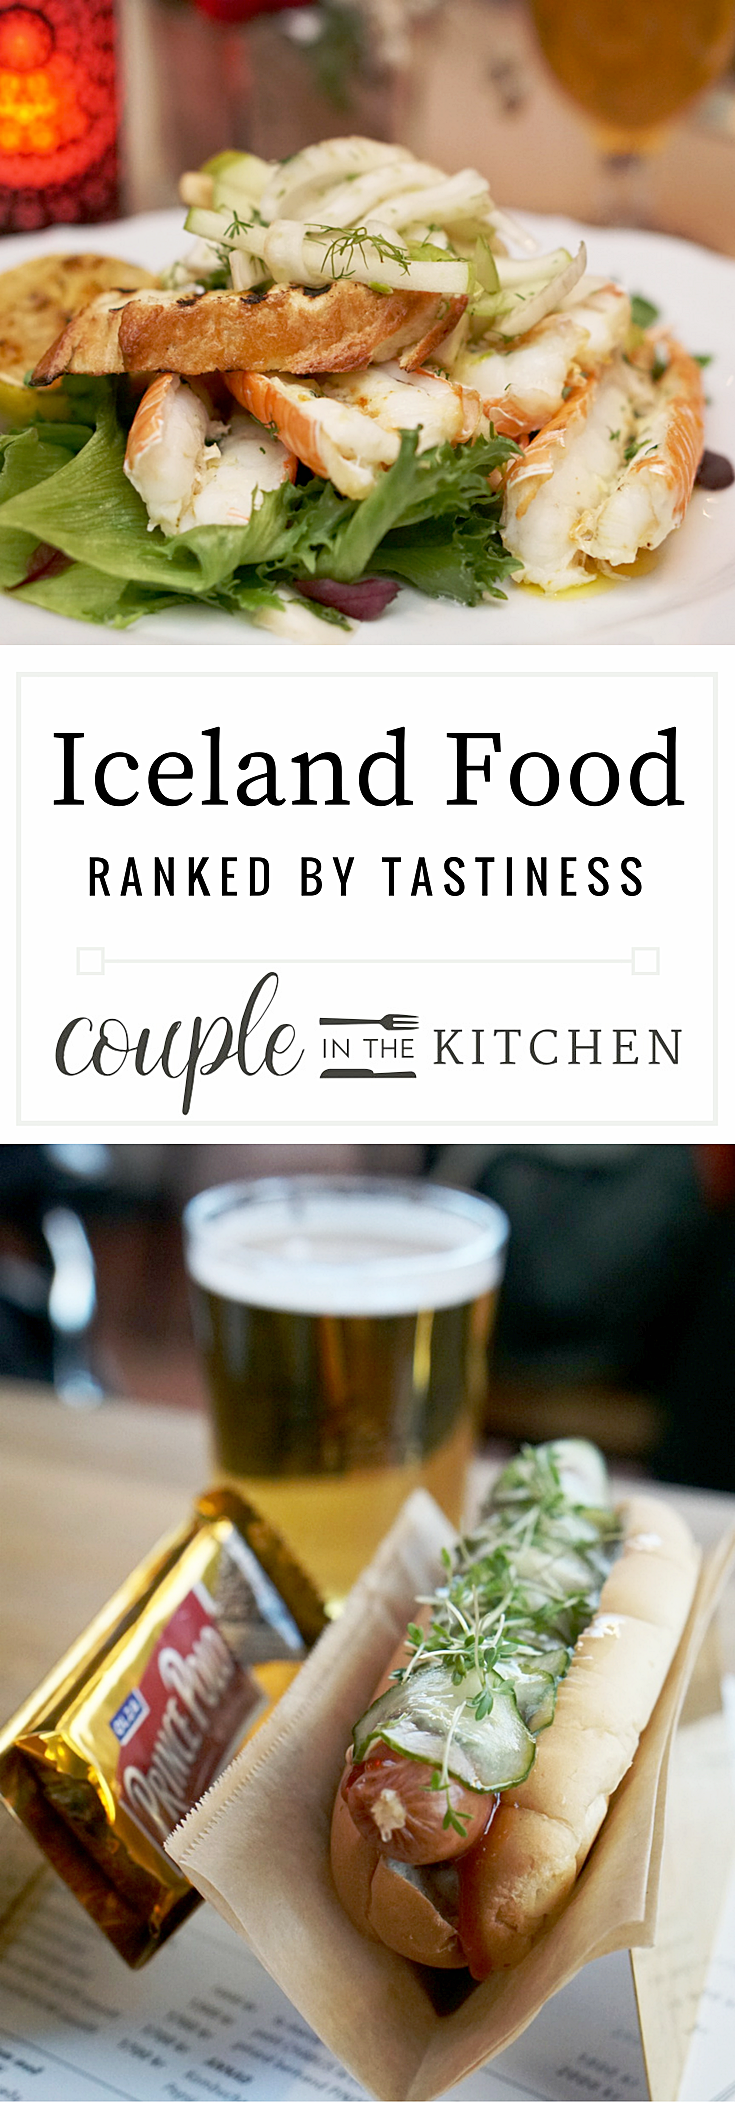 Iceland Food, Ranked by Tastiness | coupleinthekitchen.com